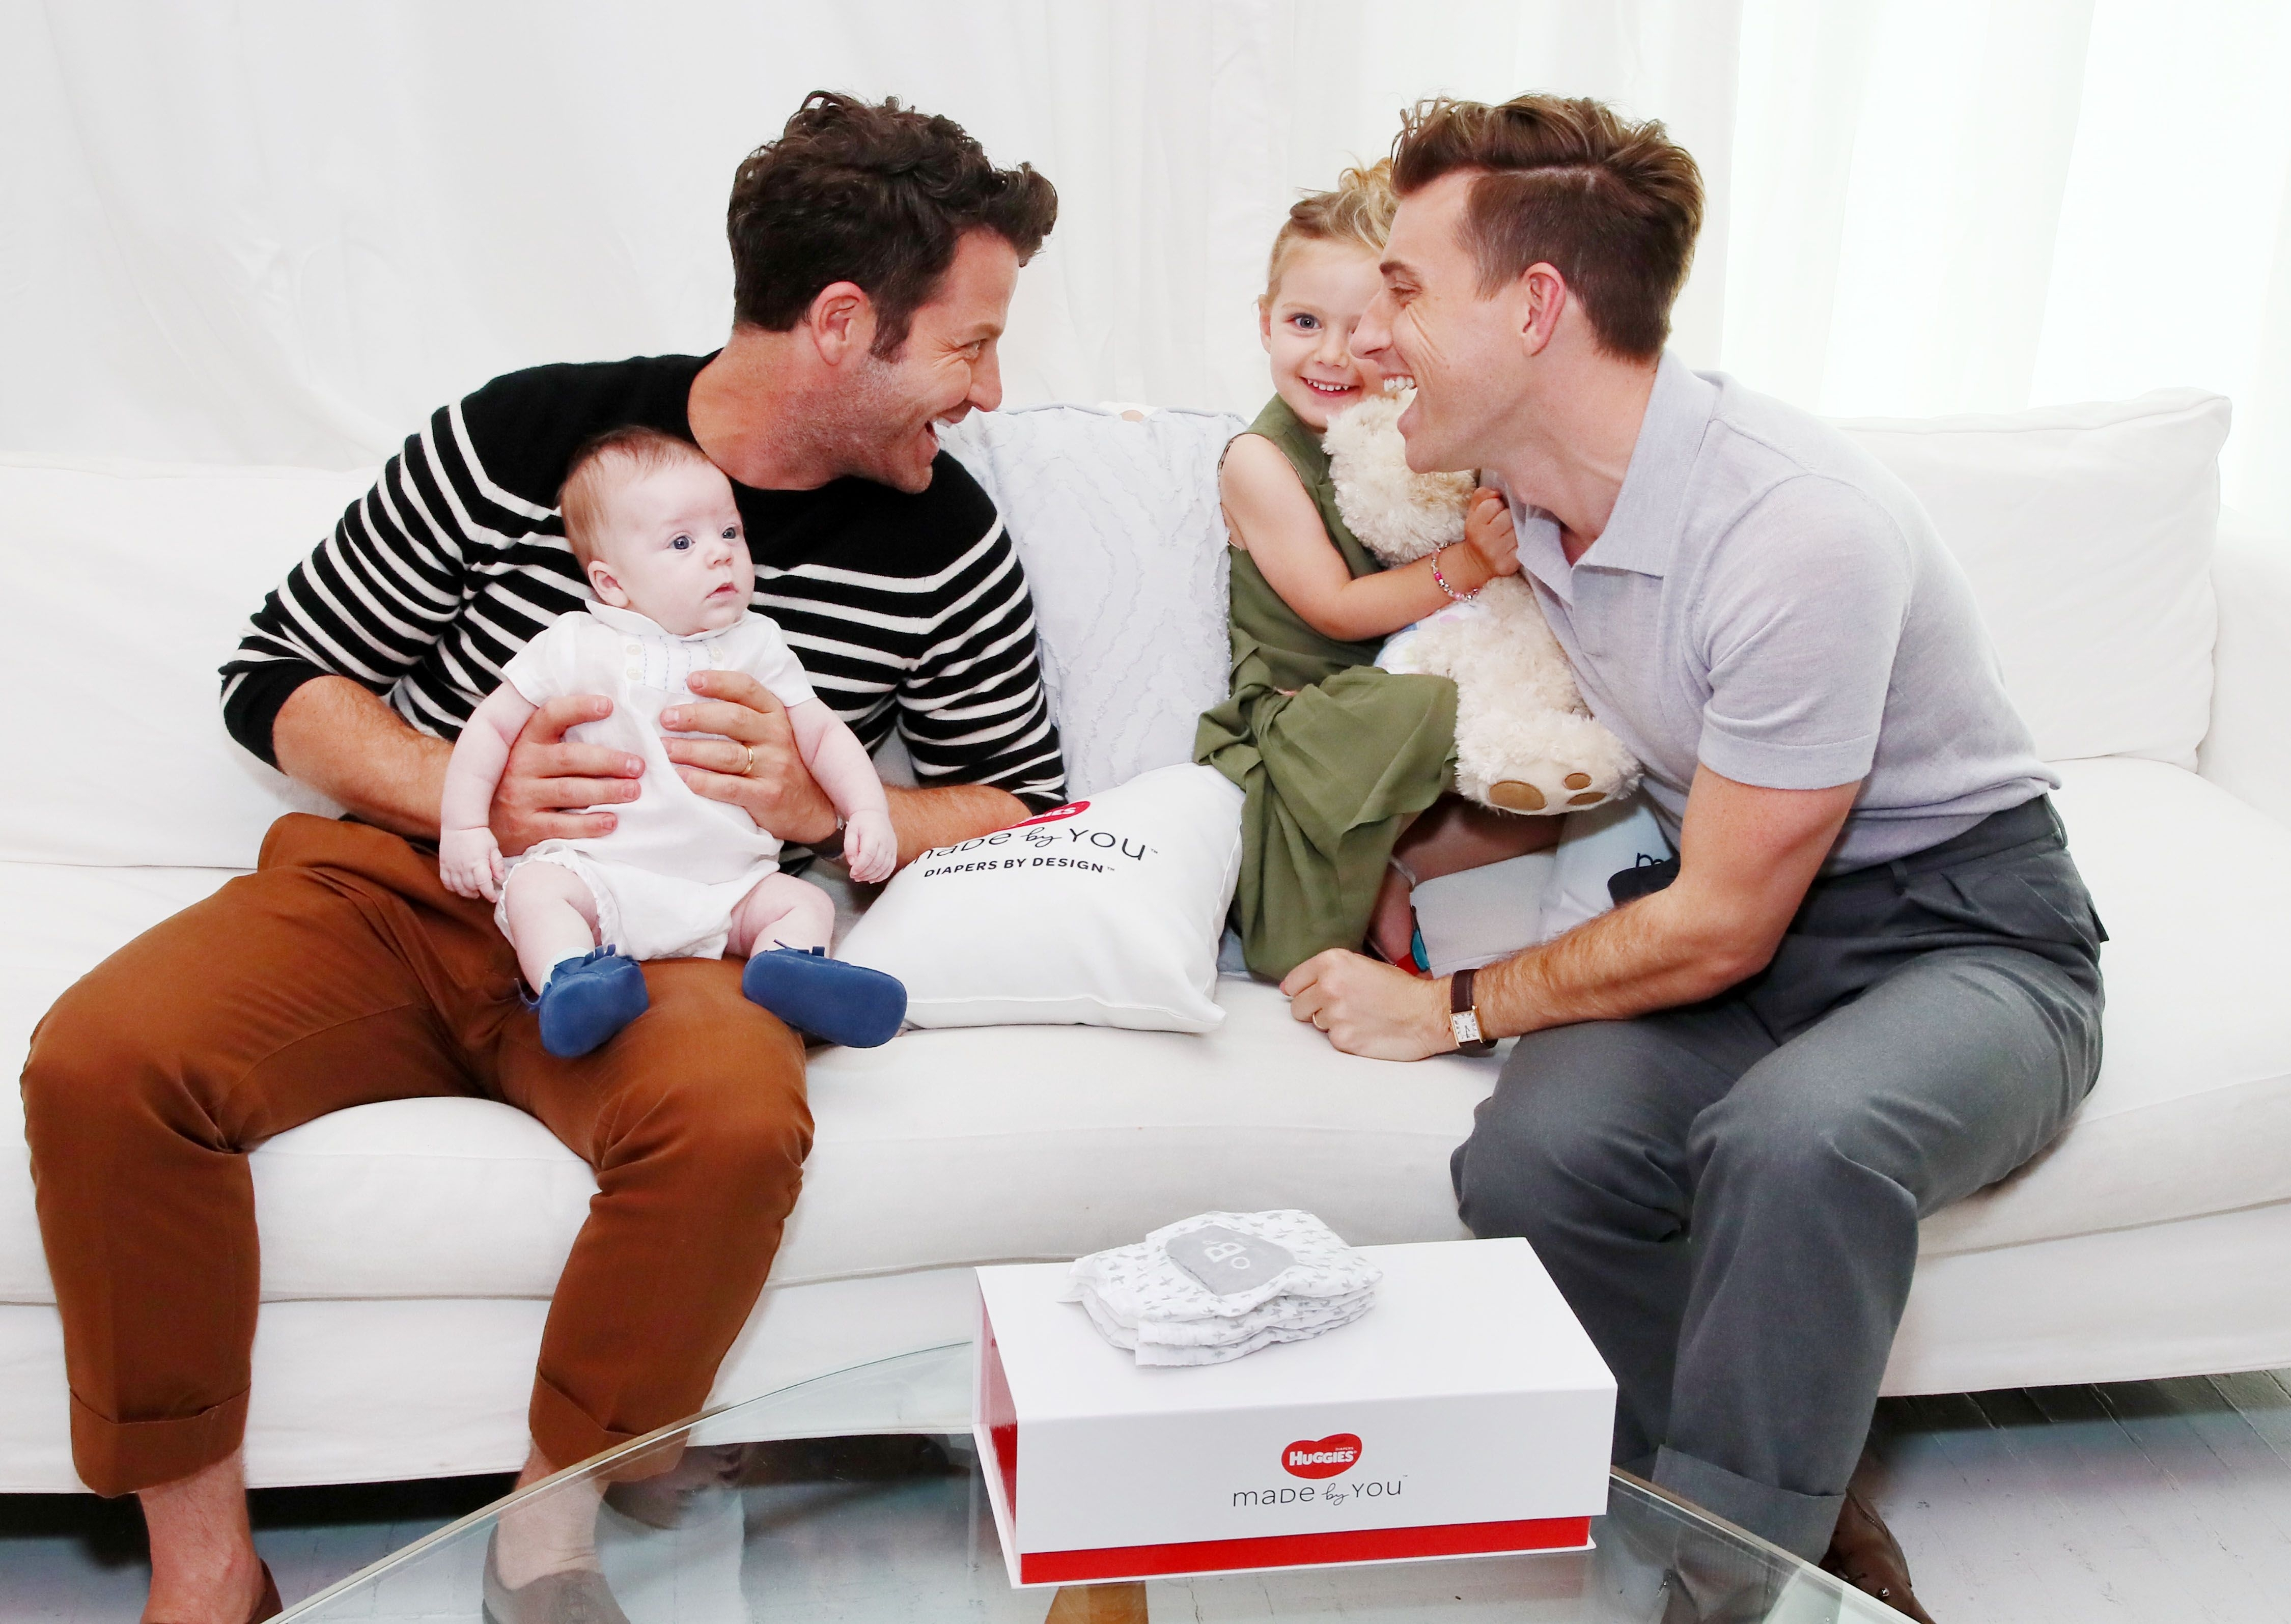 Best Of Nate Berkus And Jeremiah Brent's New Upholstery Collection regarding Whitley 3 Piece Sectionals By Nate Berkus And Jeremiah Brent